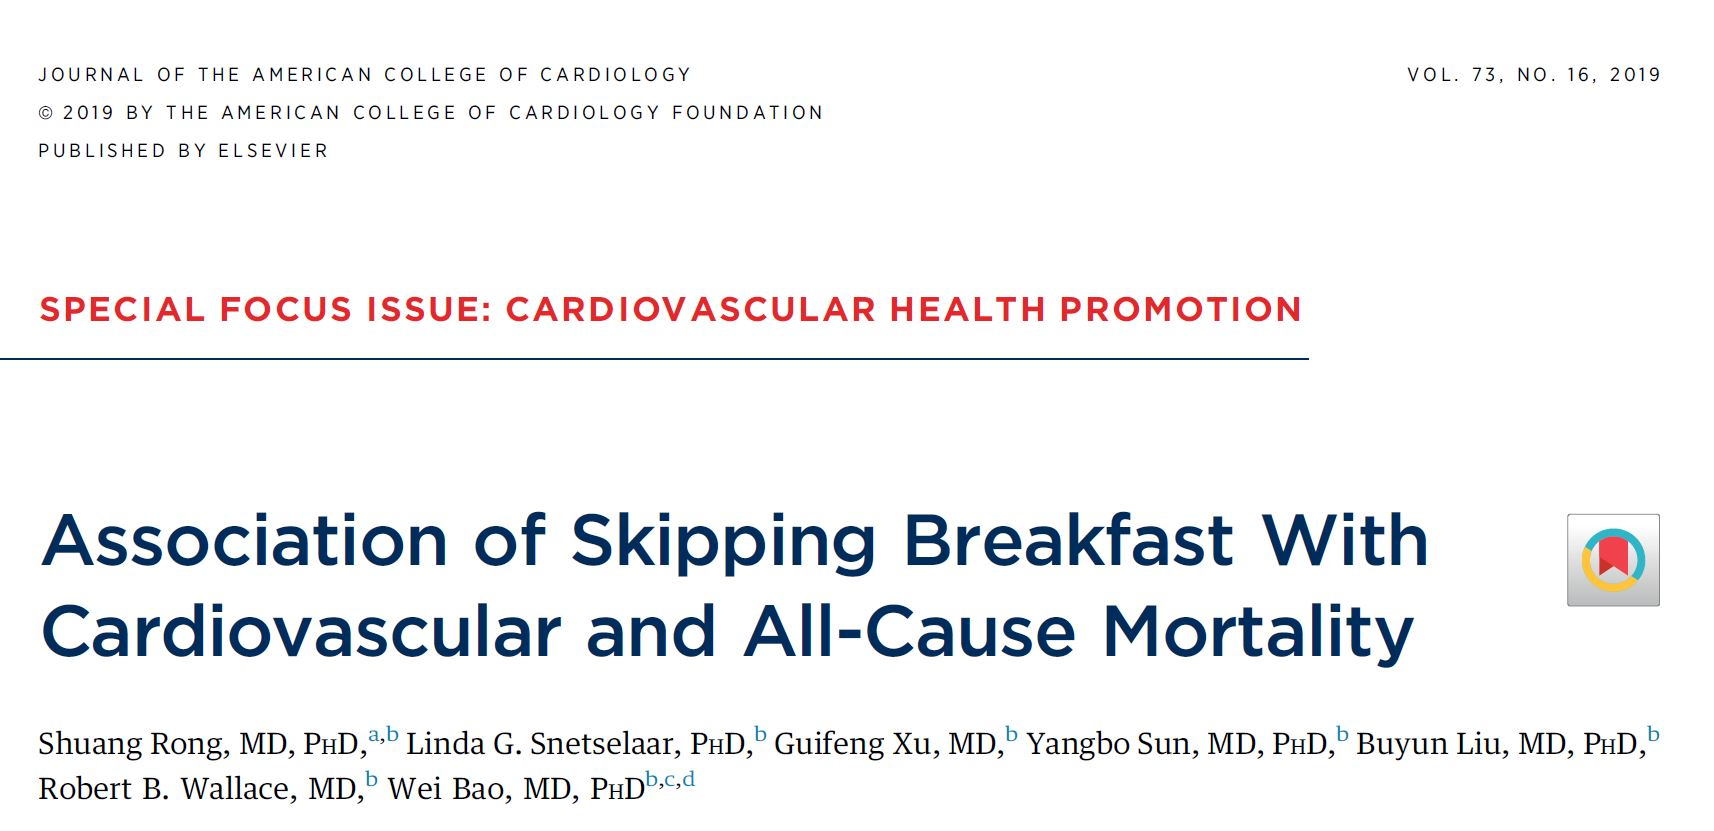 Association of Skipping Breakfast With Cardiovascular and All-Cause Mortality